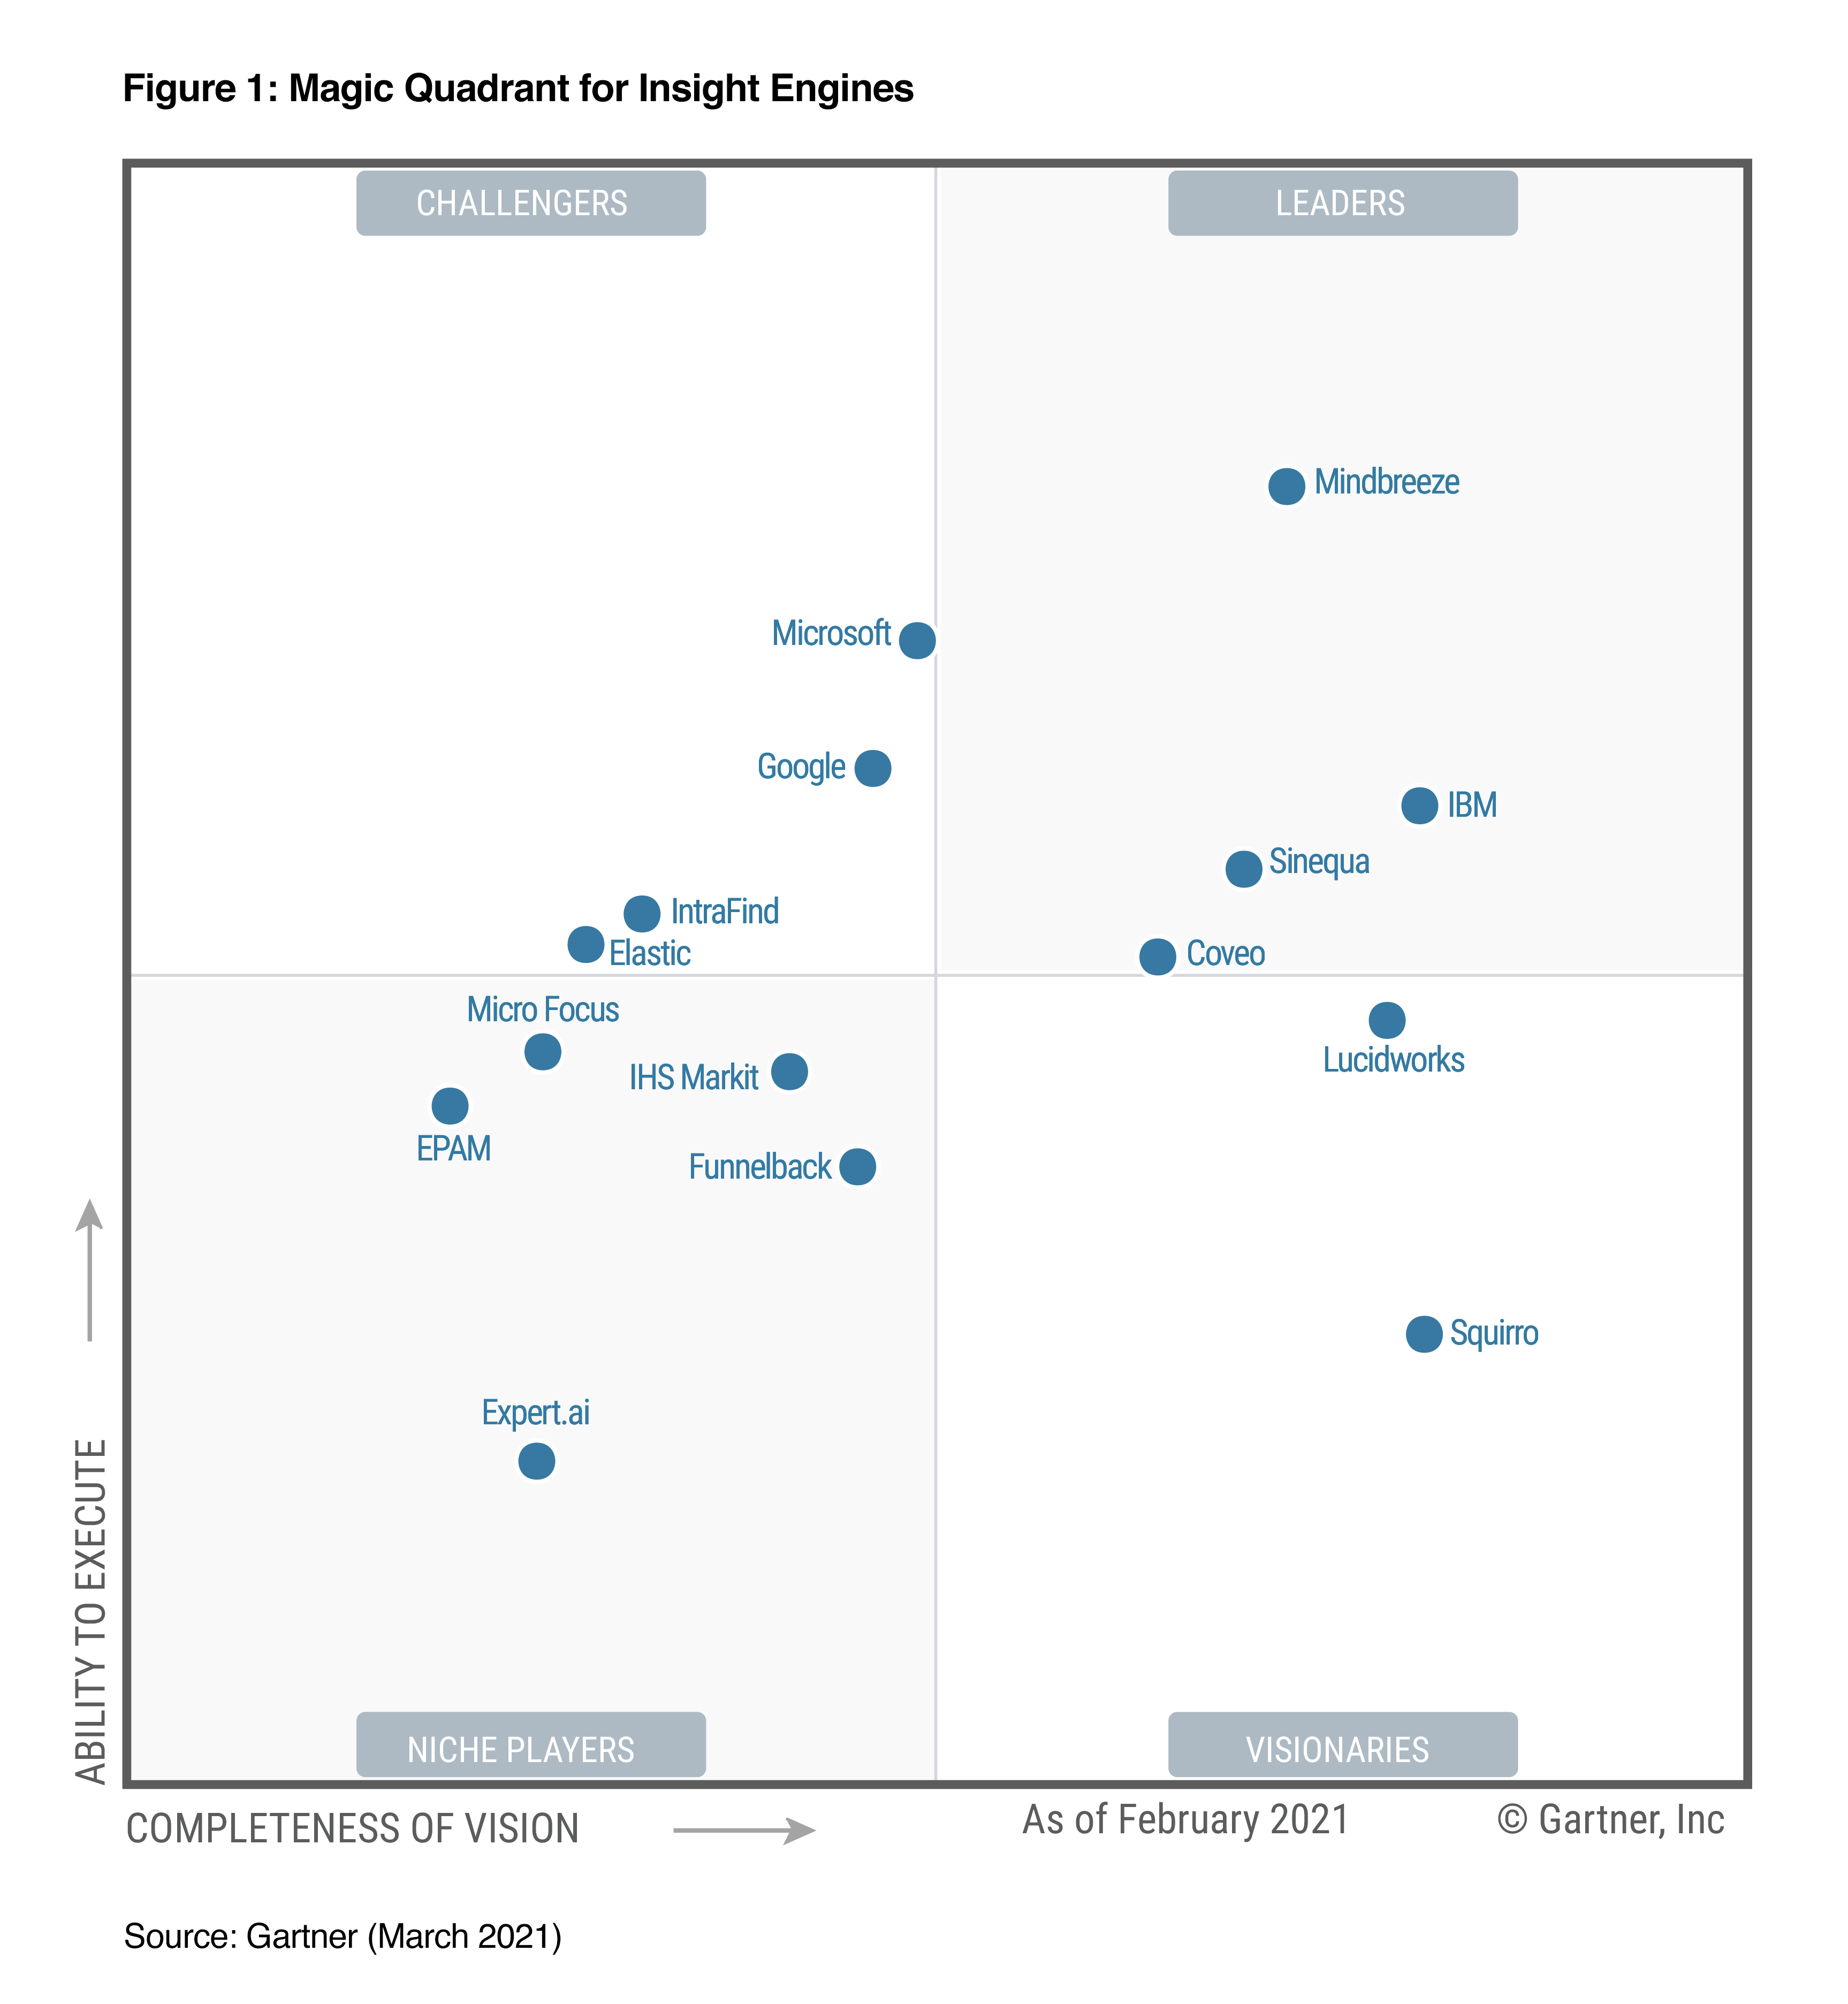 Gartner Magic Quadrant for Insight Engines 2021